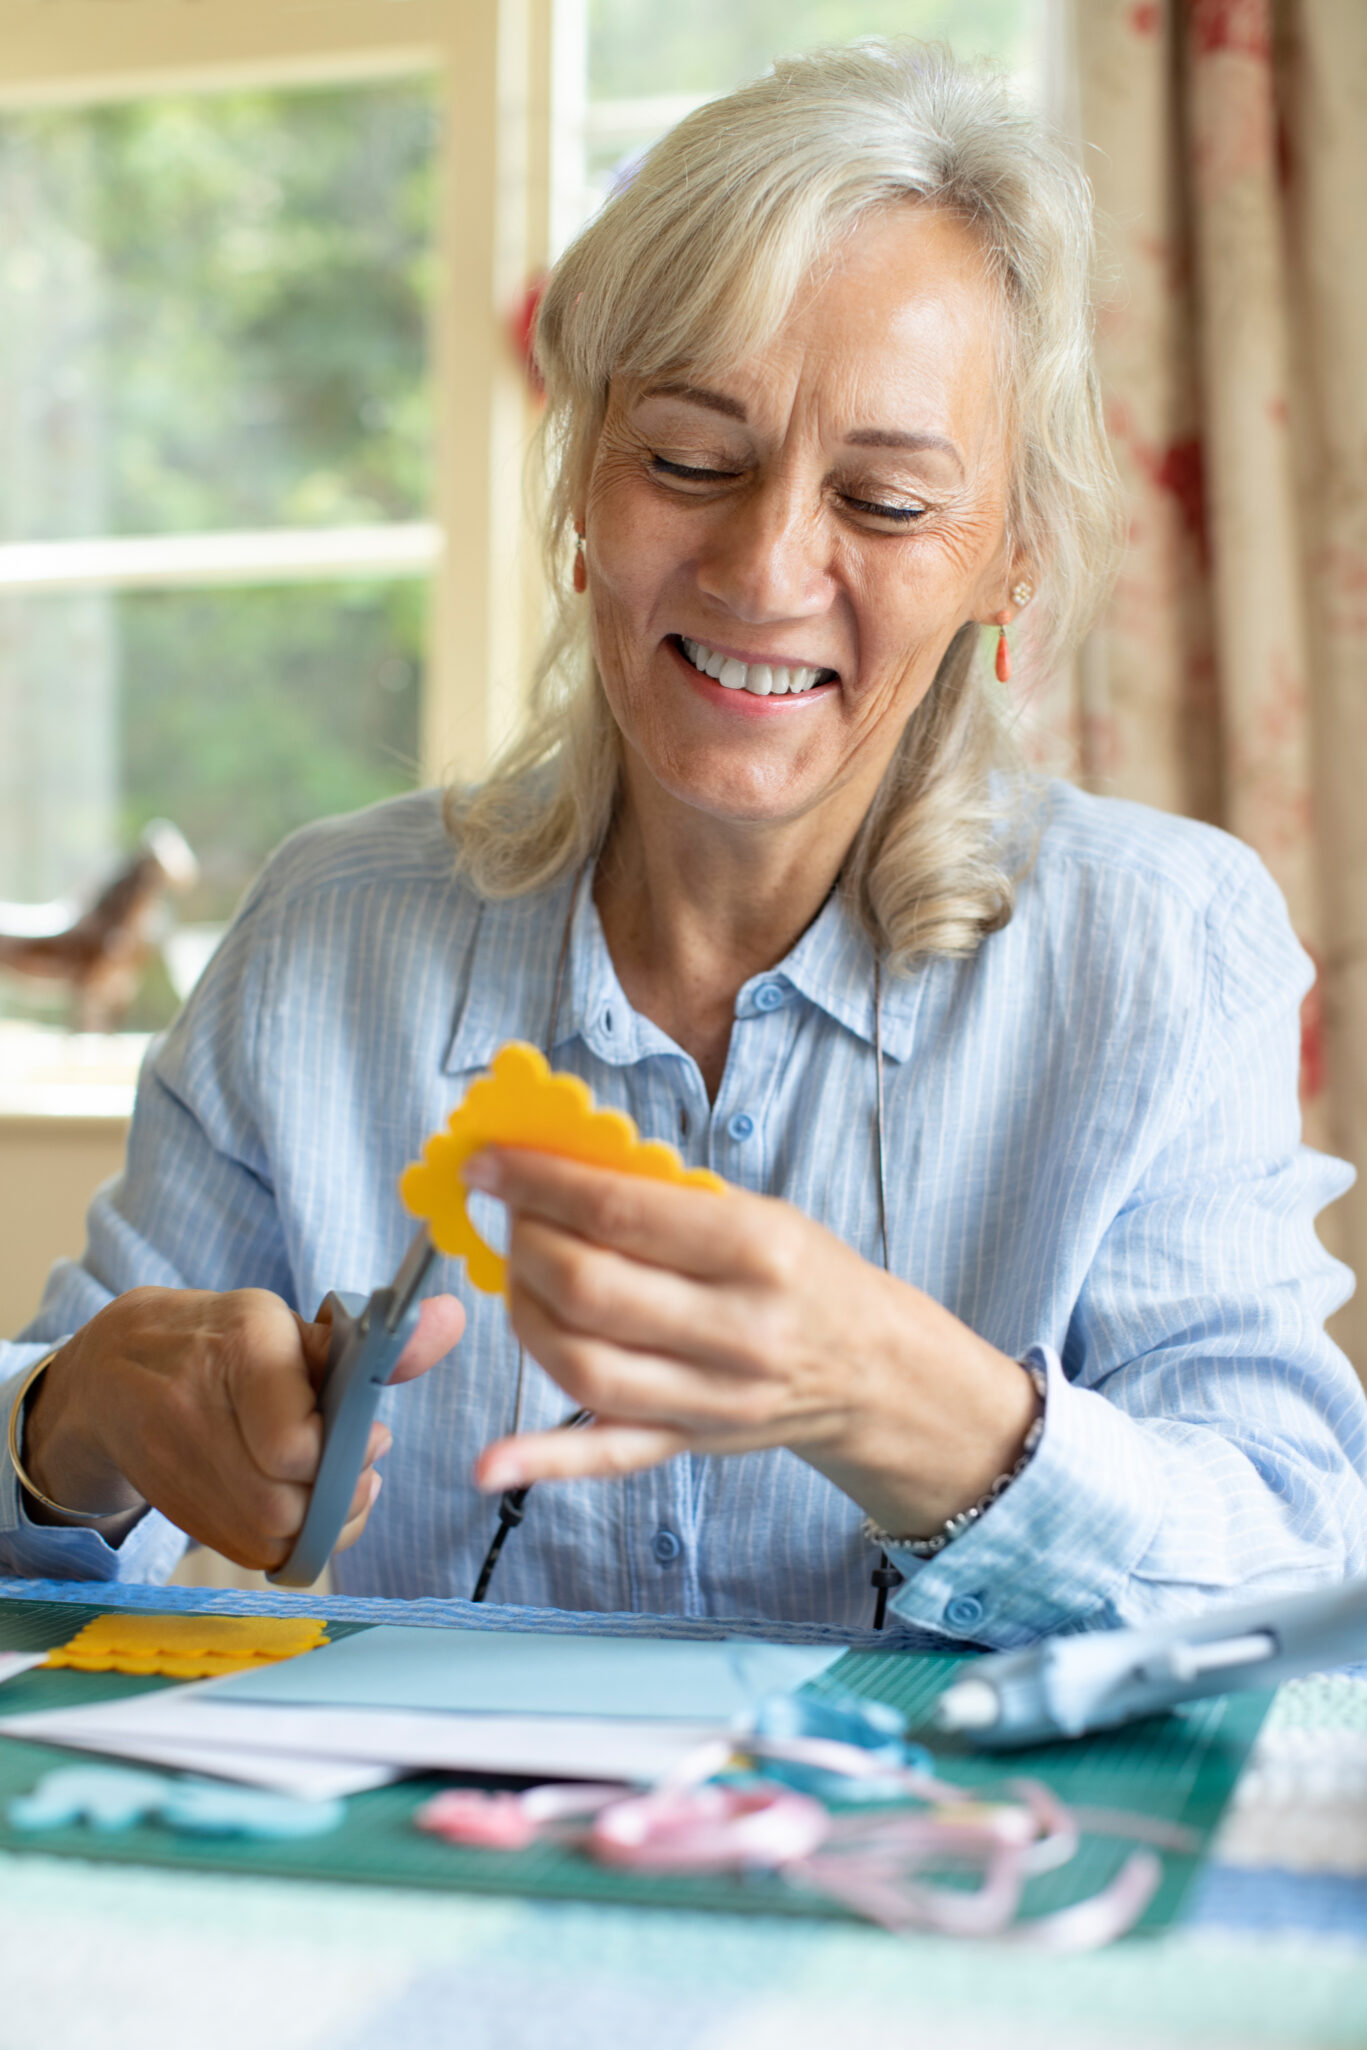 Senior woman cutting out paper